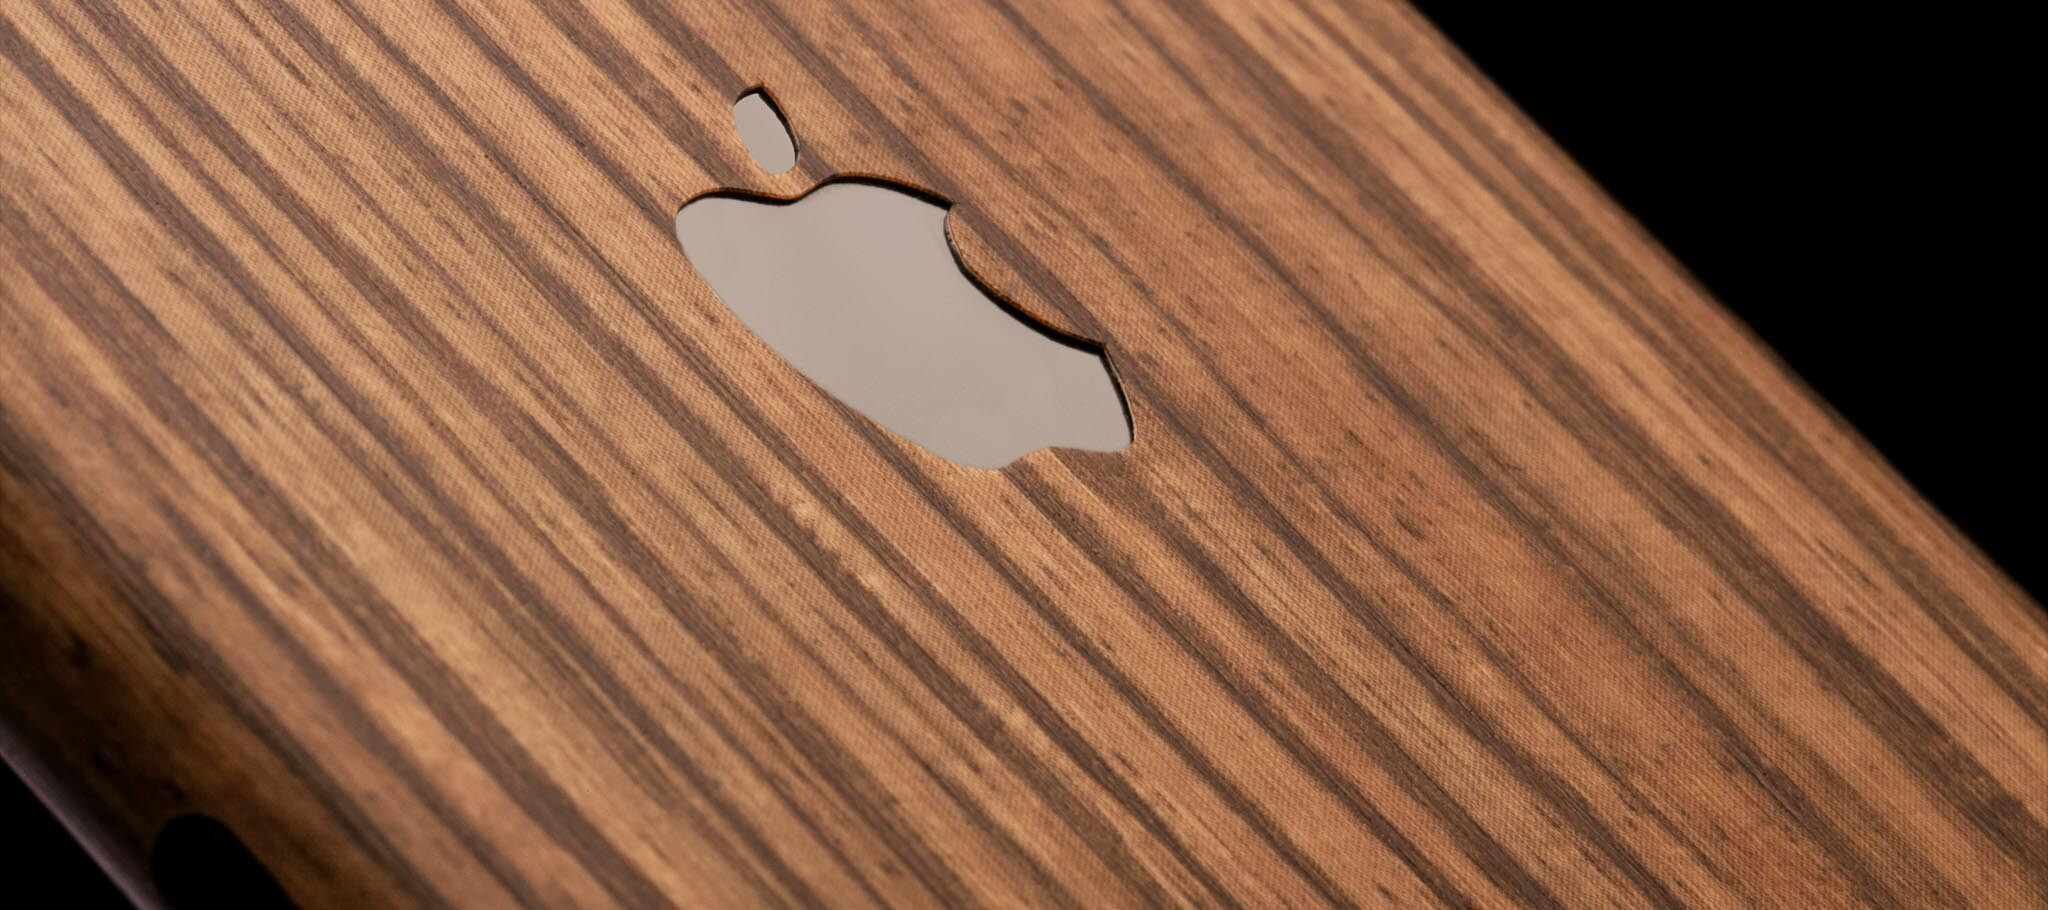 cfa68540b9312f Exceptional vinyl skins for the Apple iPhone 7 and iPhone 7 Plus: dbrand  and Slickwraps' best